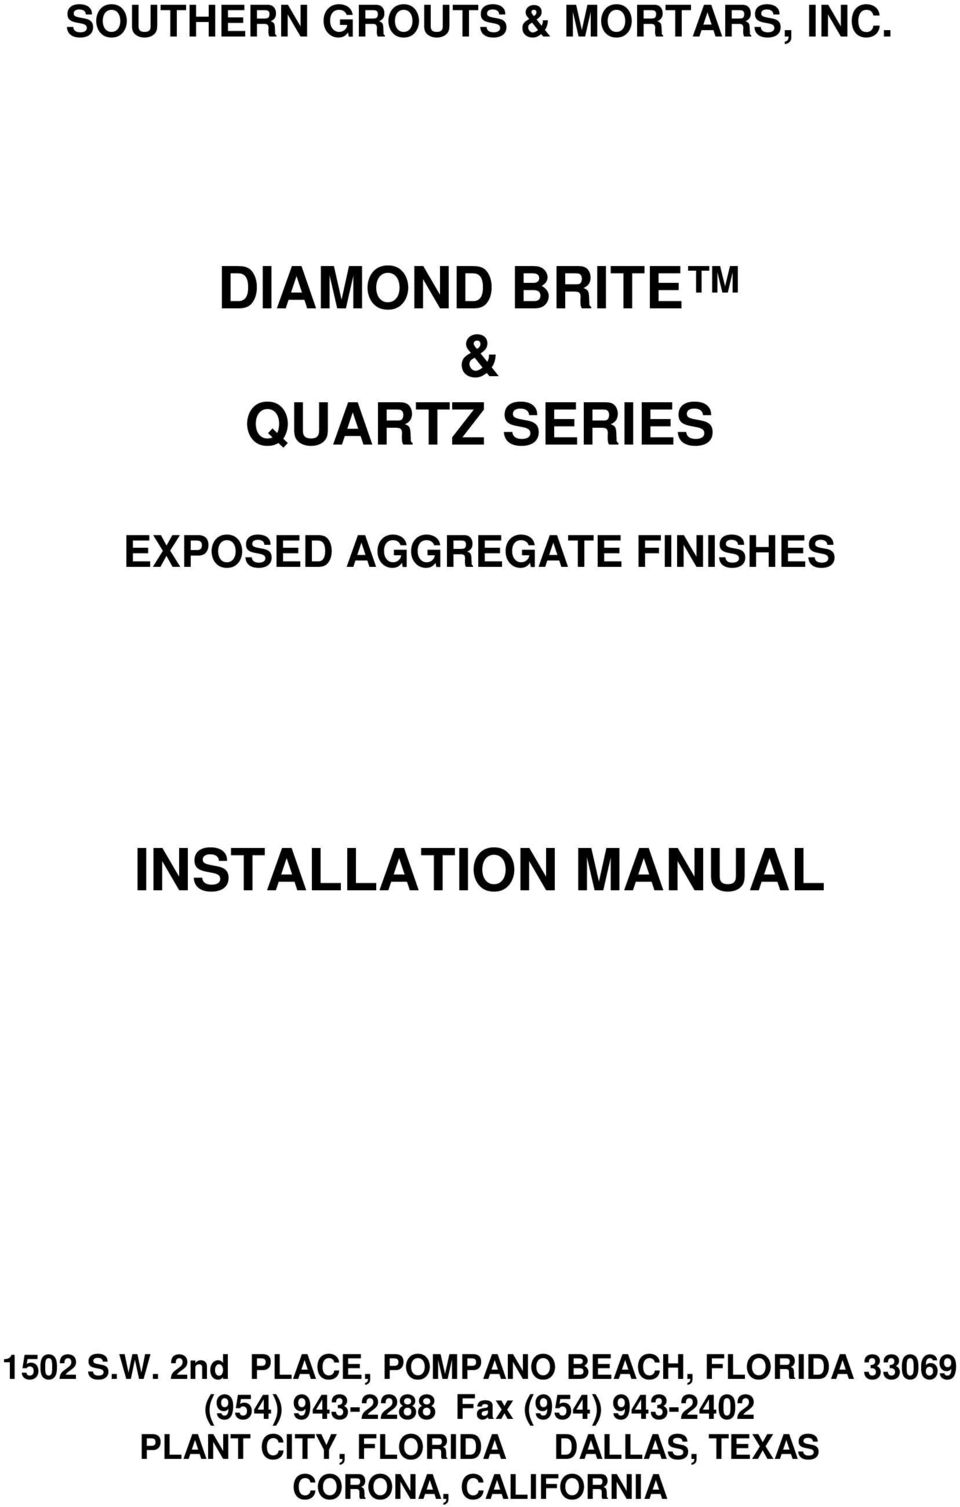 Diamond Brite Quartz Series Installation Manual Pdf